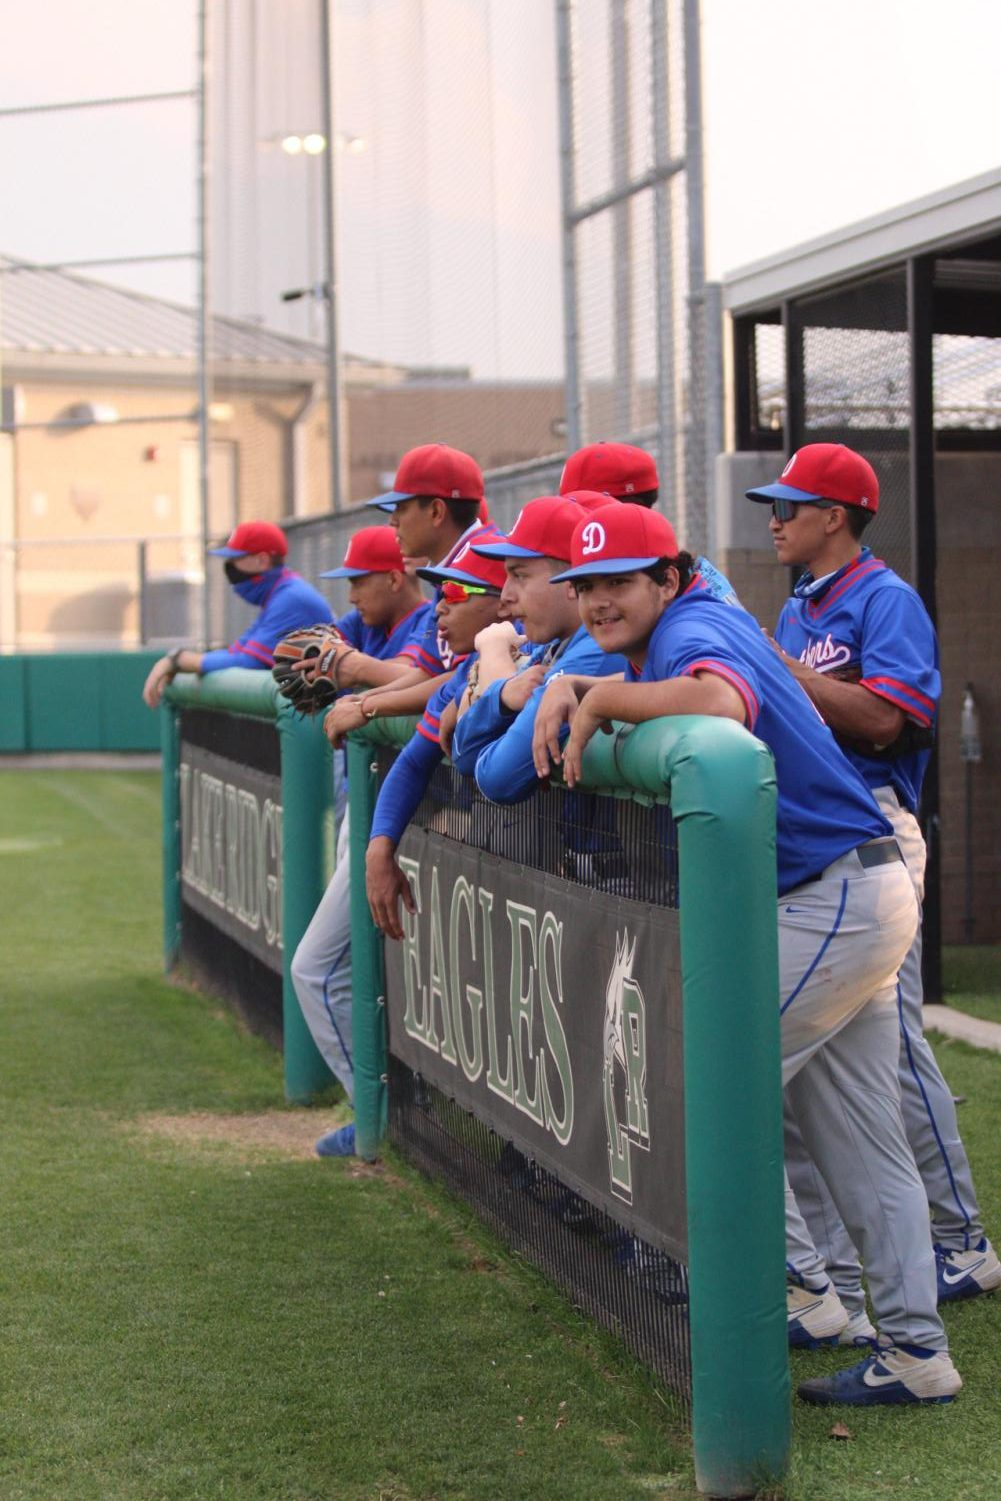 Duncanville heads to playoffs, will face Belton in first round.